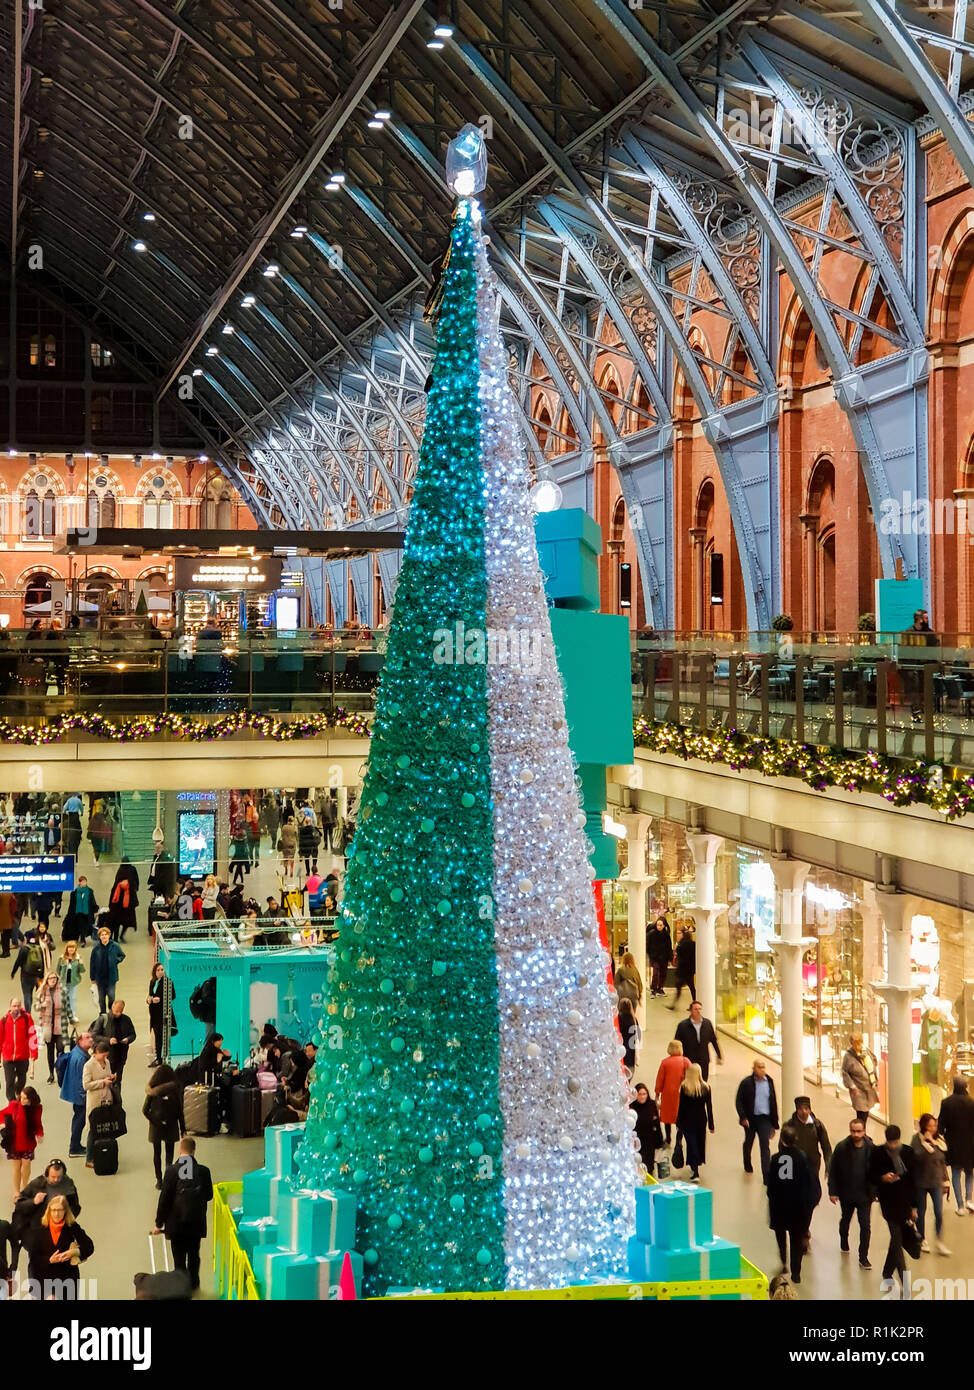 St Pancras International Station London Uk 13th November 2018 The St Pancras Christmas Tree Is A 43 Foot Tree Decorated With 600 Replica Bottles Of The Jewellery Houses S Signature Eau De Parfum Fragrance